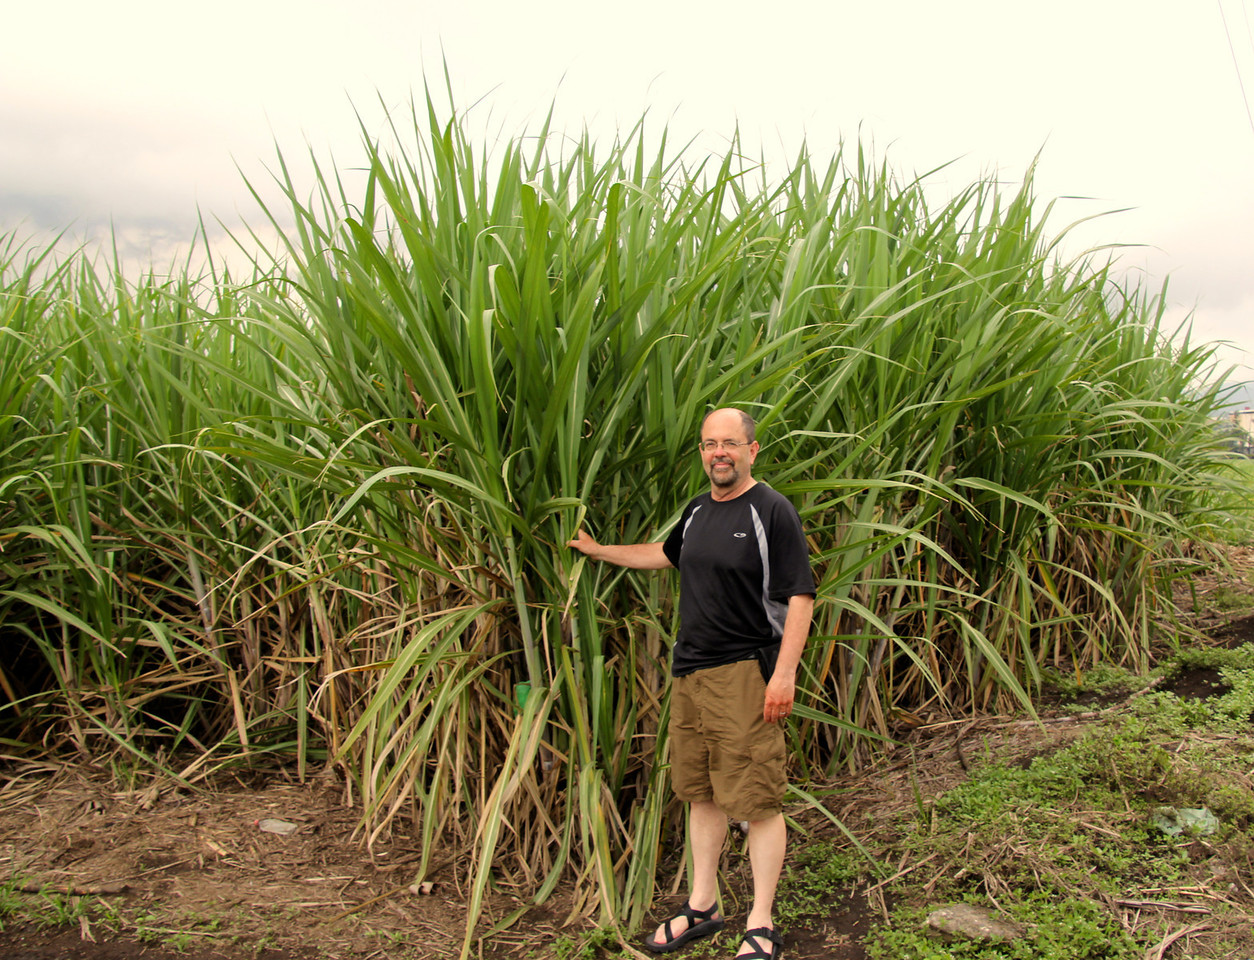 Sugarcane almost ready for harvest. - Jay